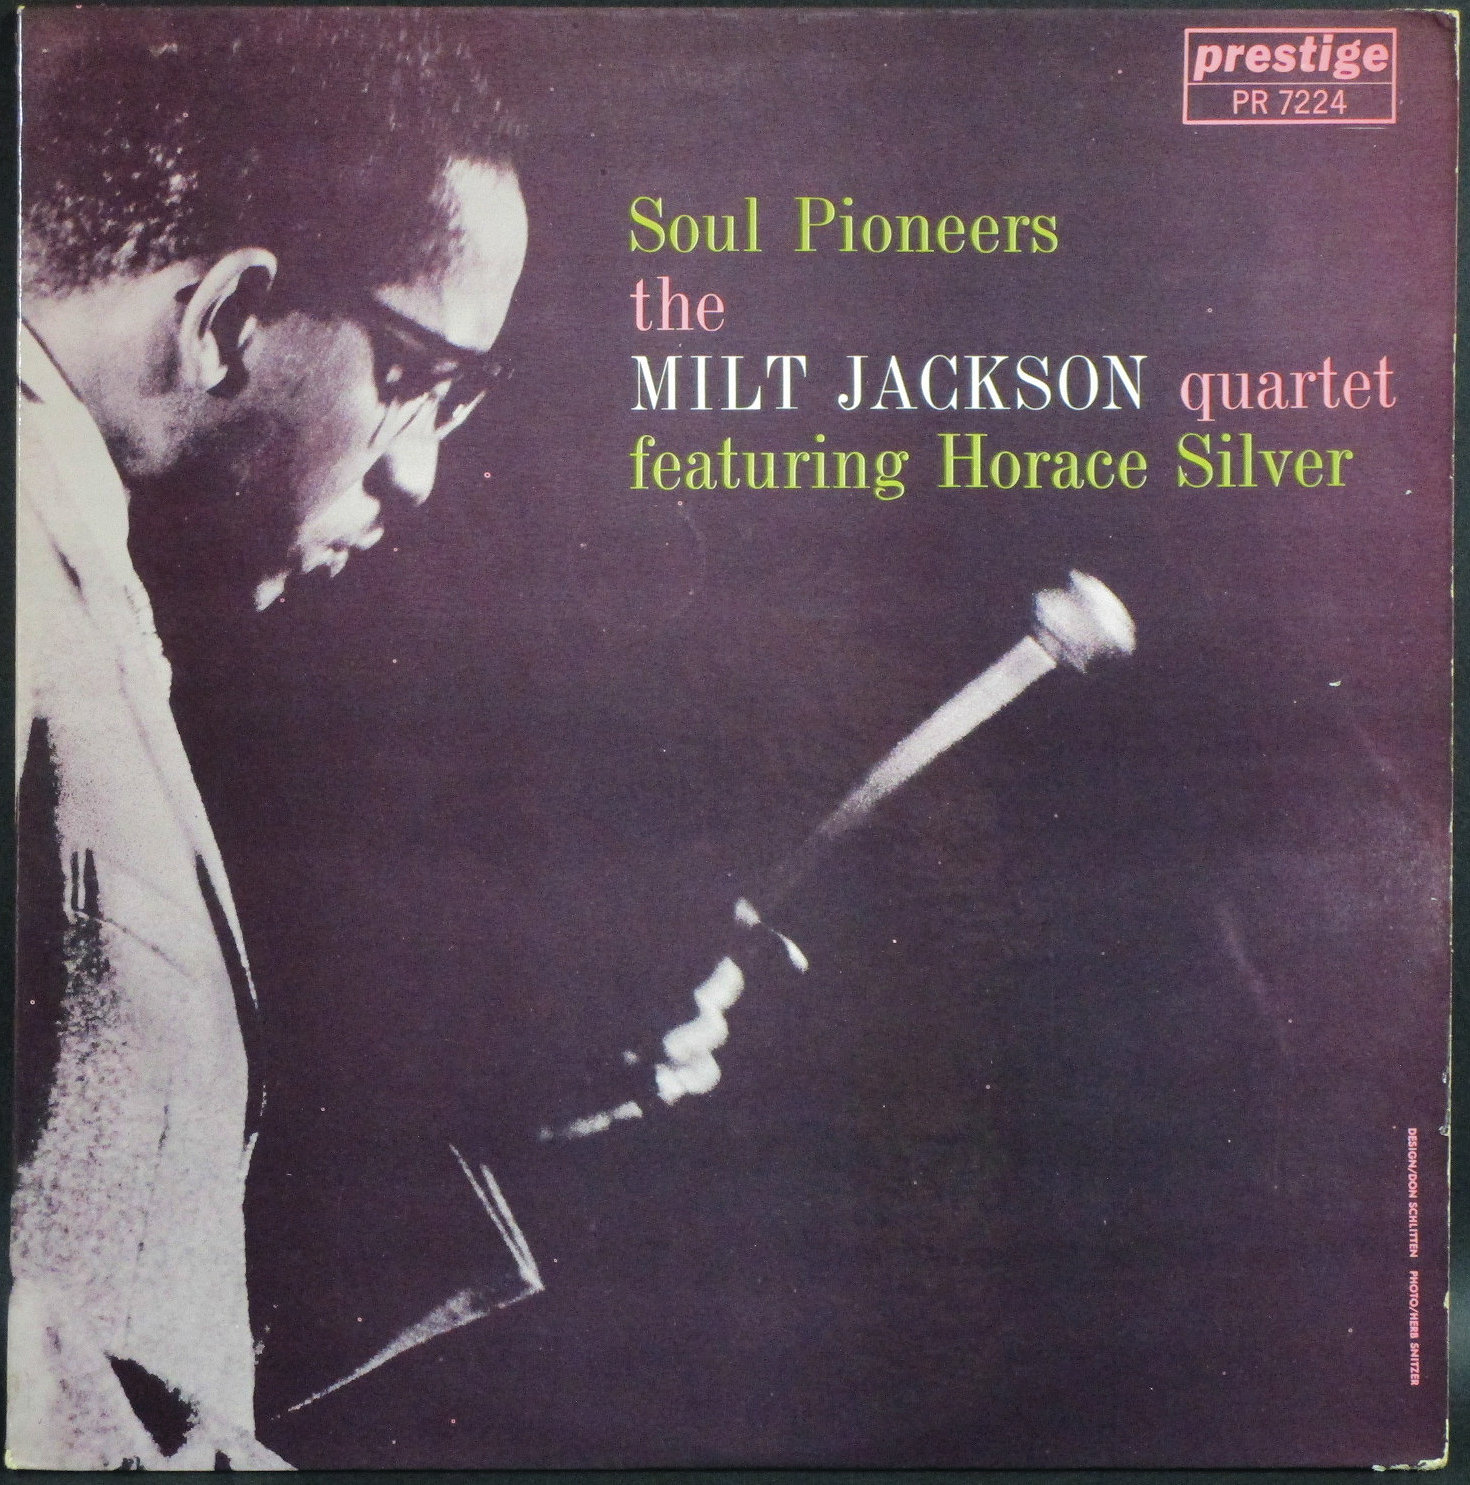 Milt Jackson Quartet Featuring Horace Silver ミルト・ジャクソン / Soul Pioneers